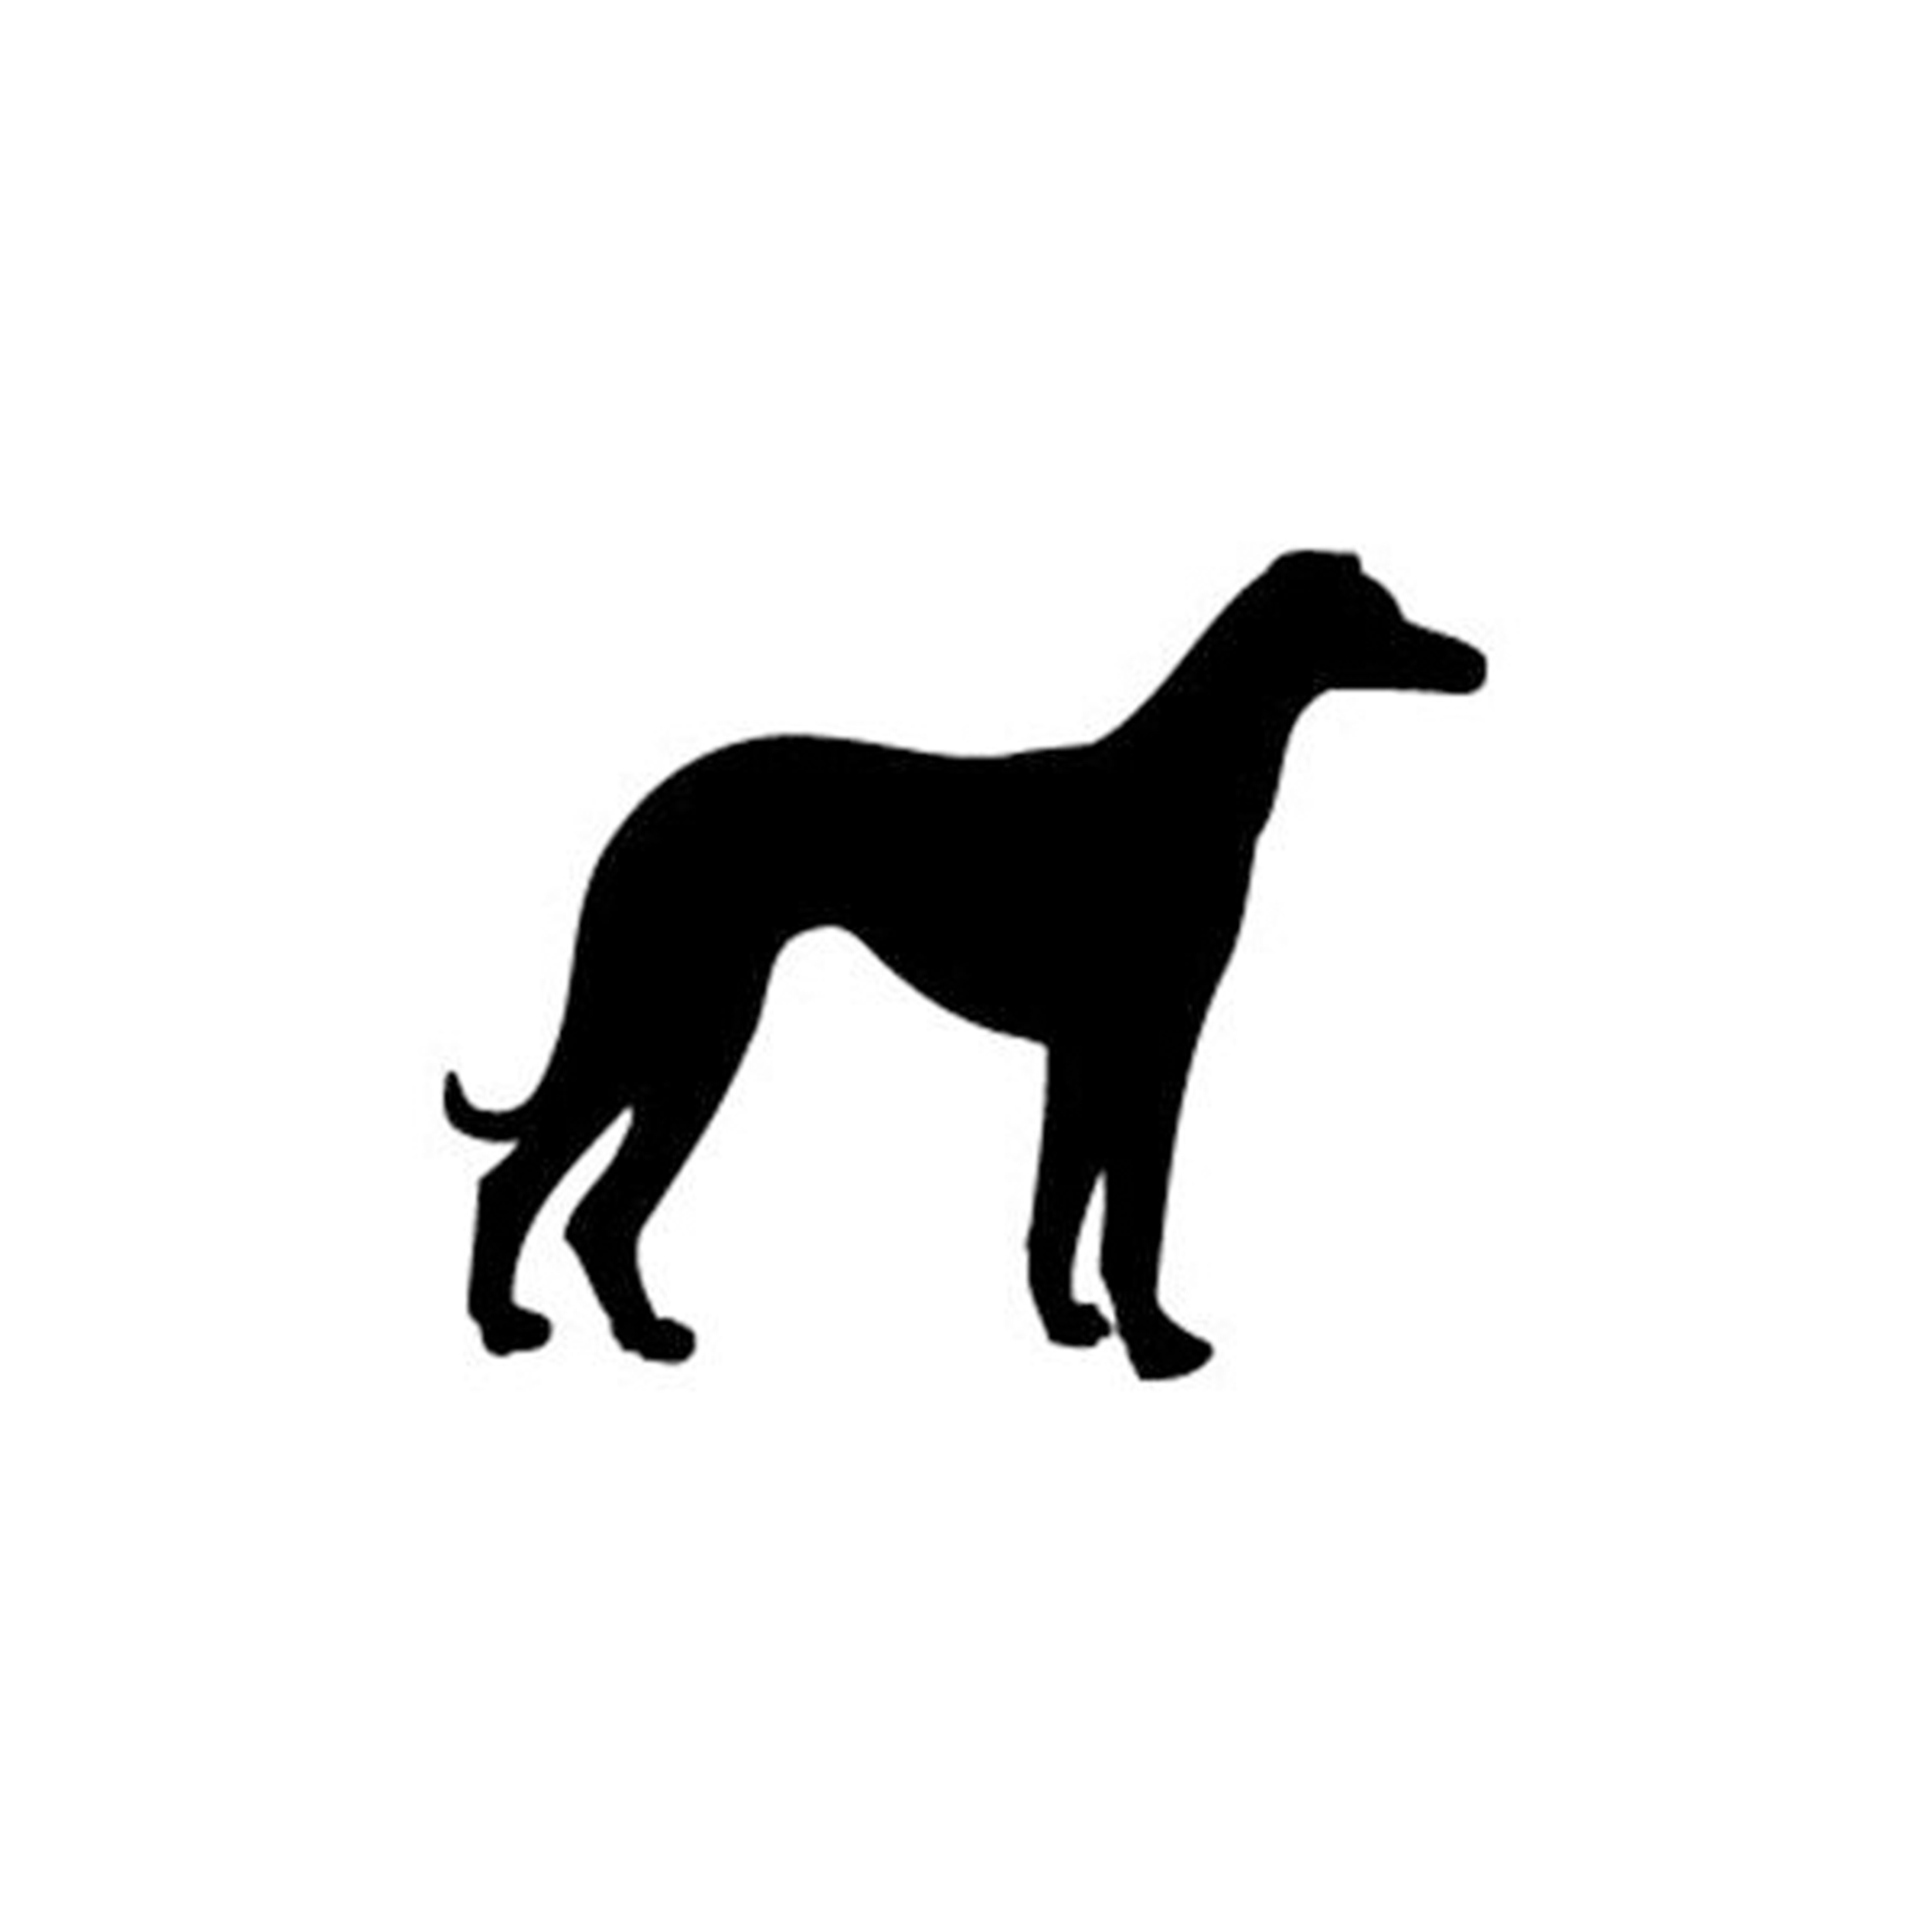 Woodworking Project Paper Plan to Build Greyhound Dog Shadow Pattern